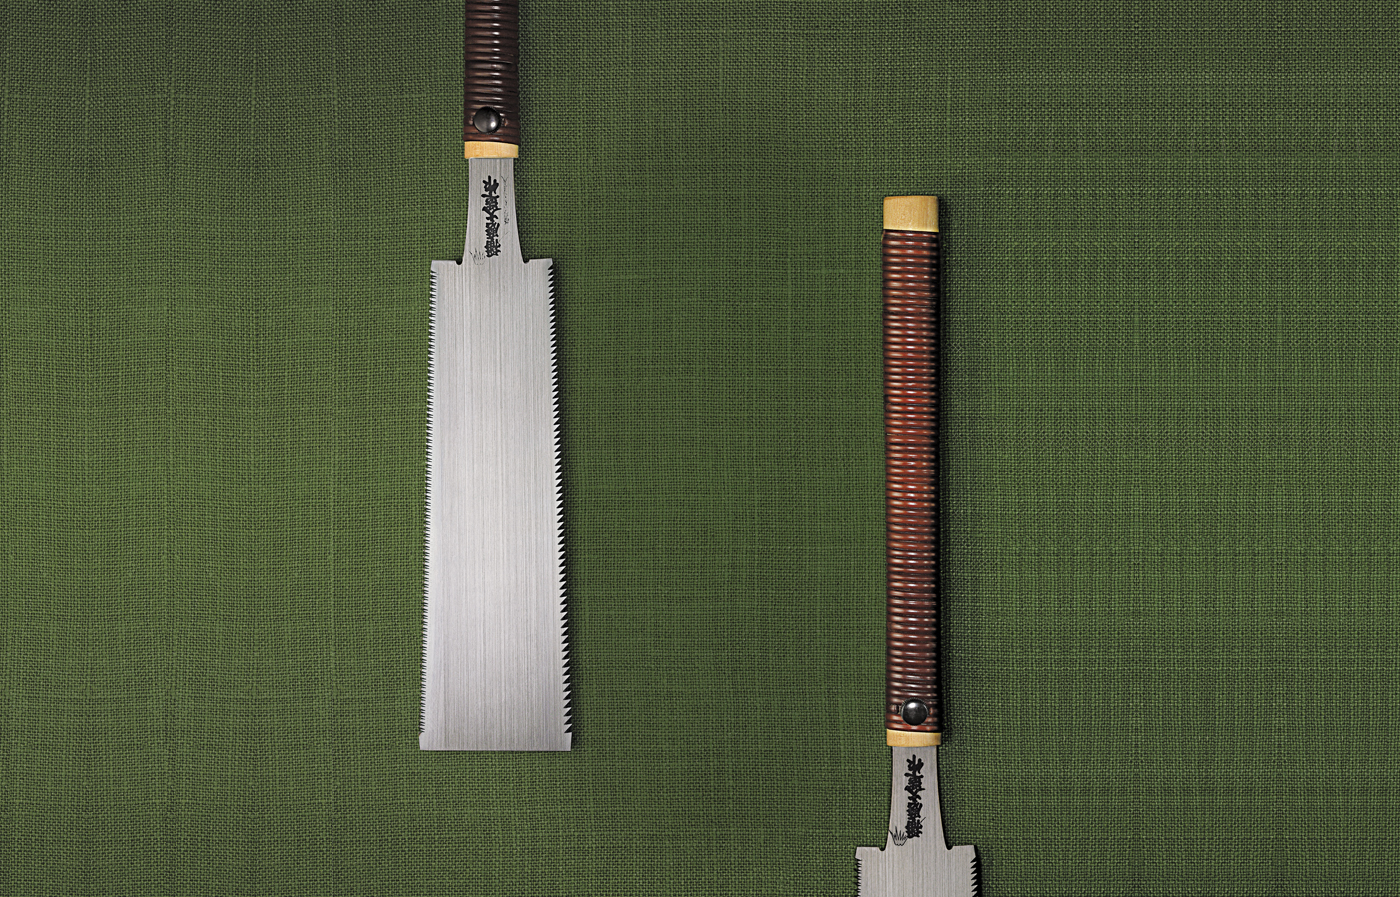 Two Japanese saws laying next to each other.